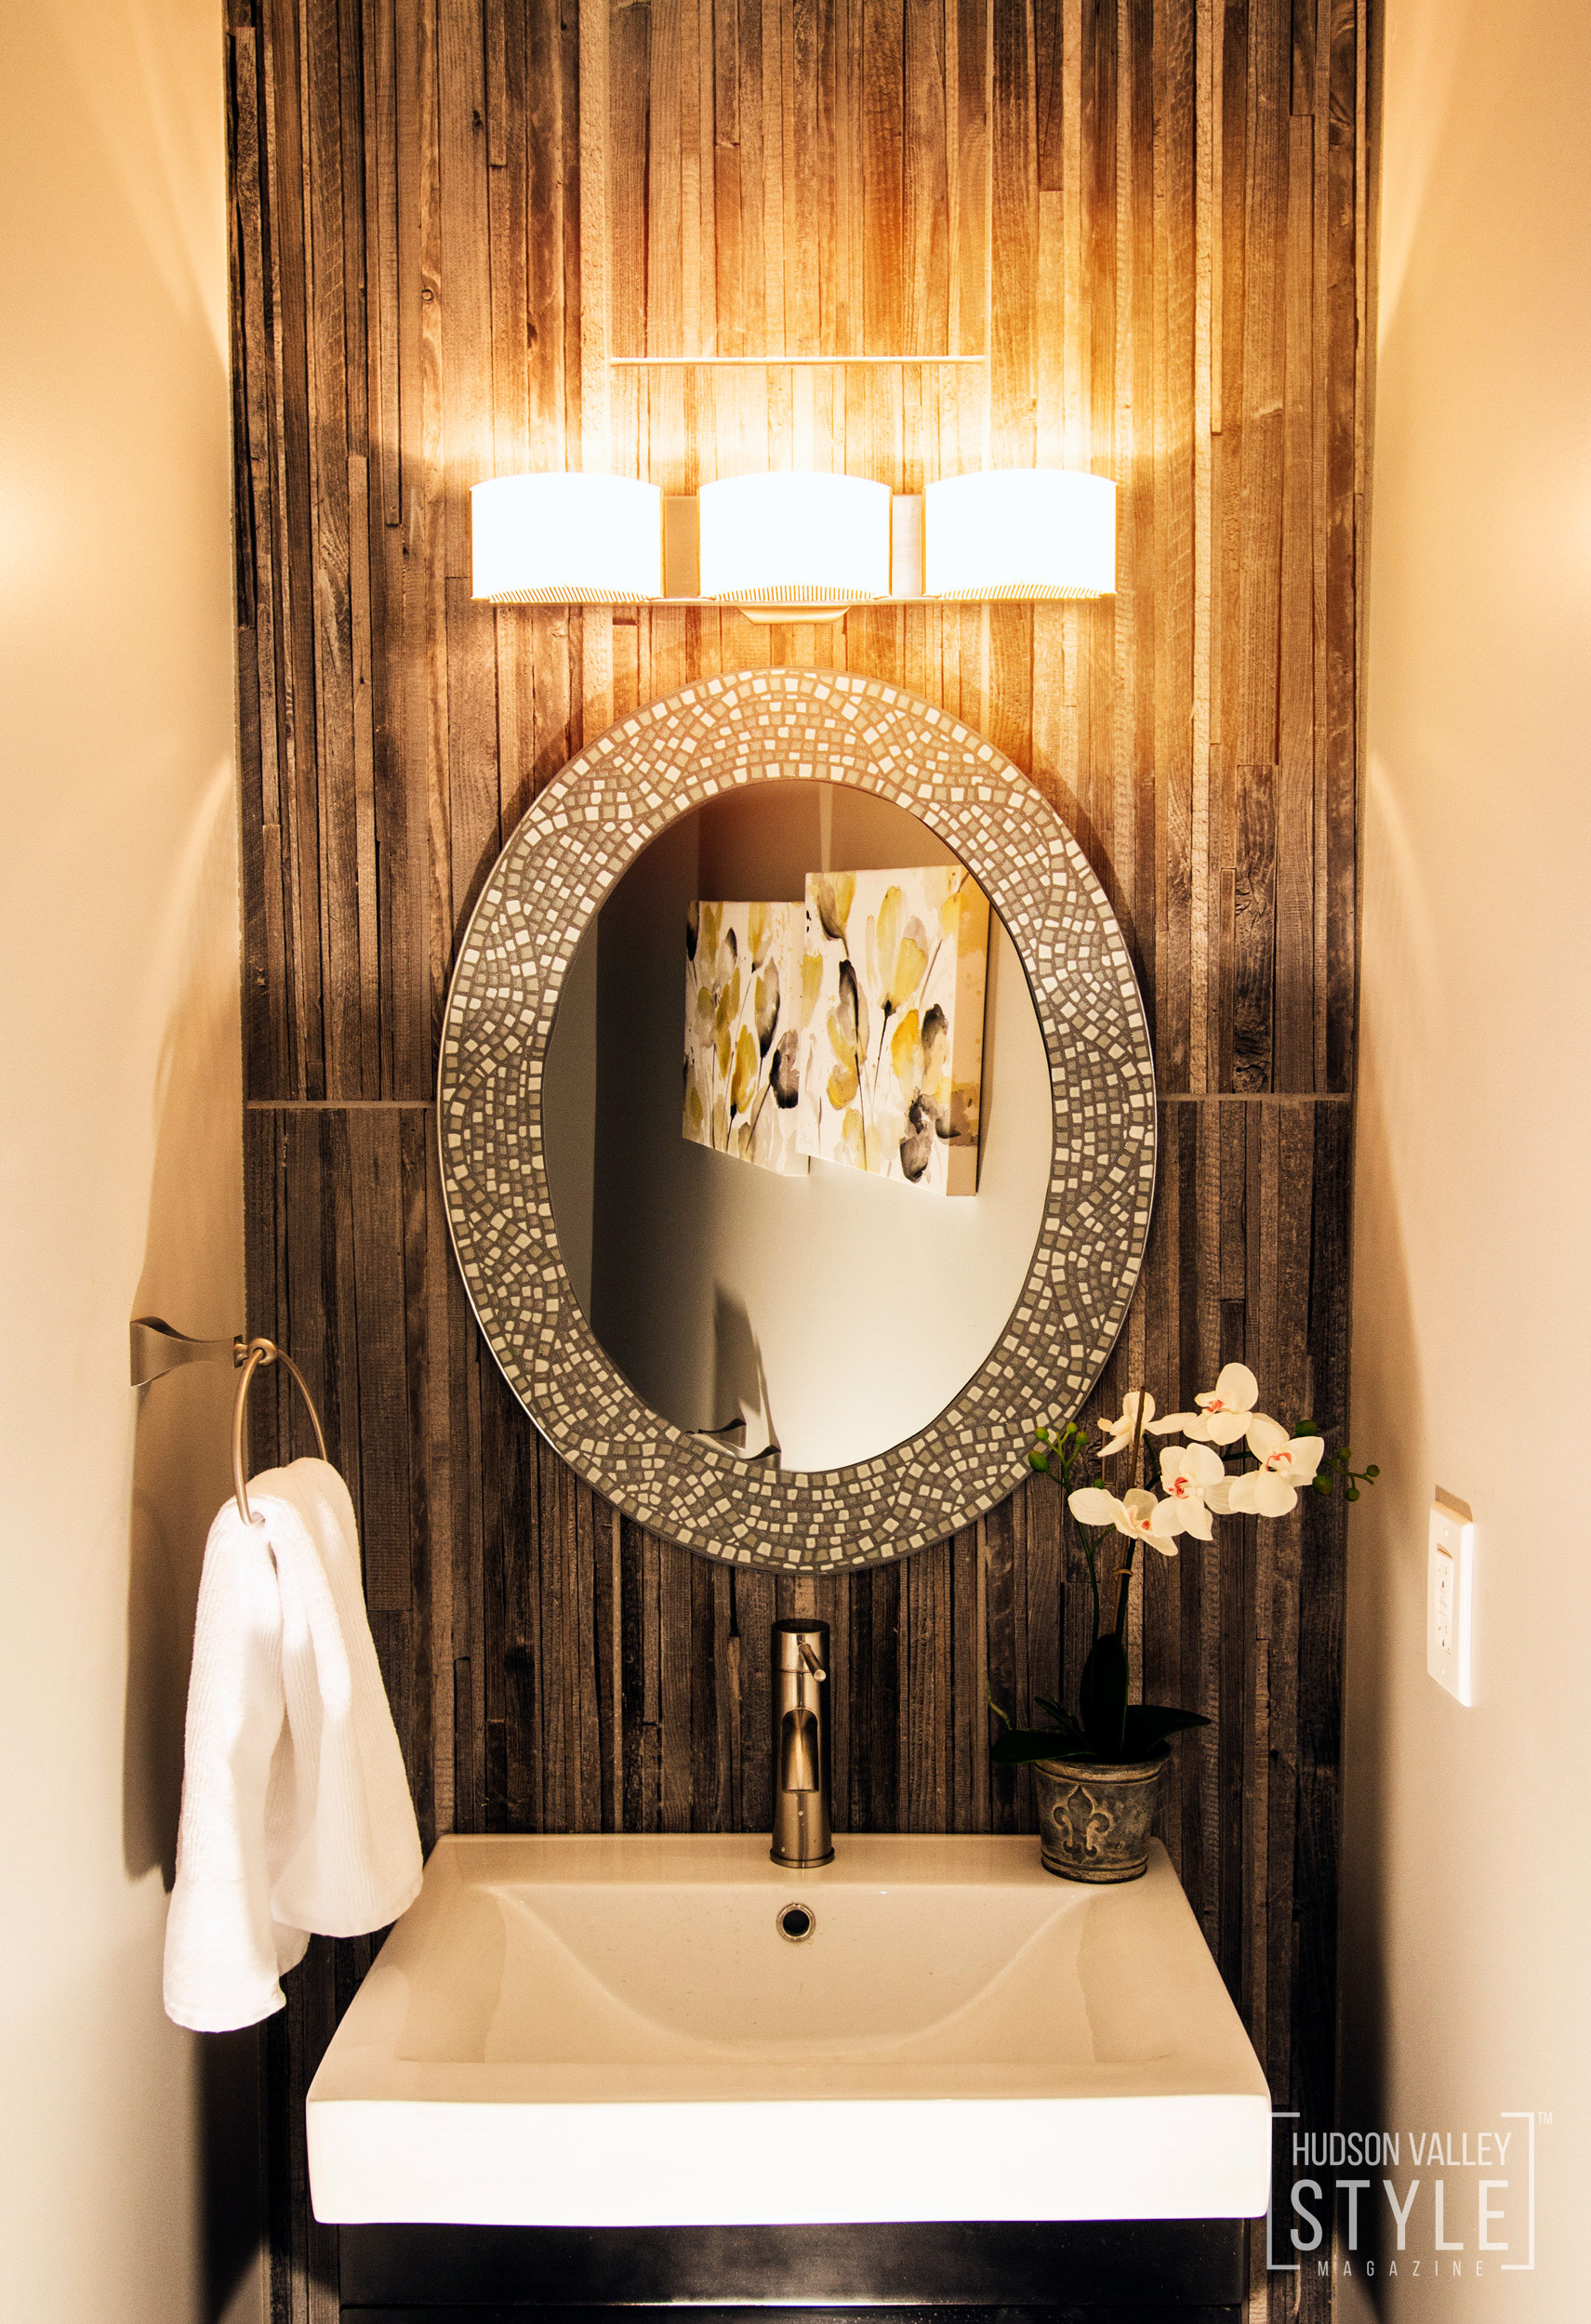 Affordable bathroom updates with big impact - Hudson Valley Style Magazine